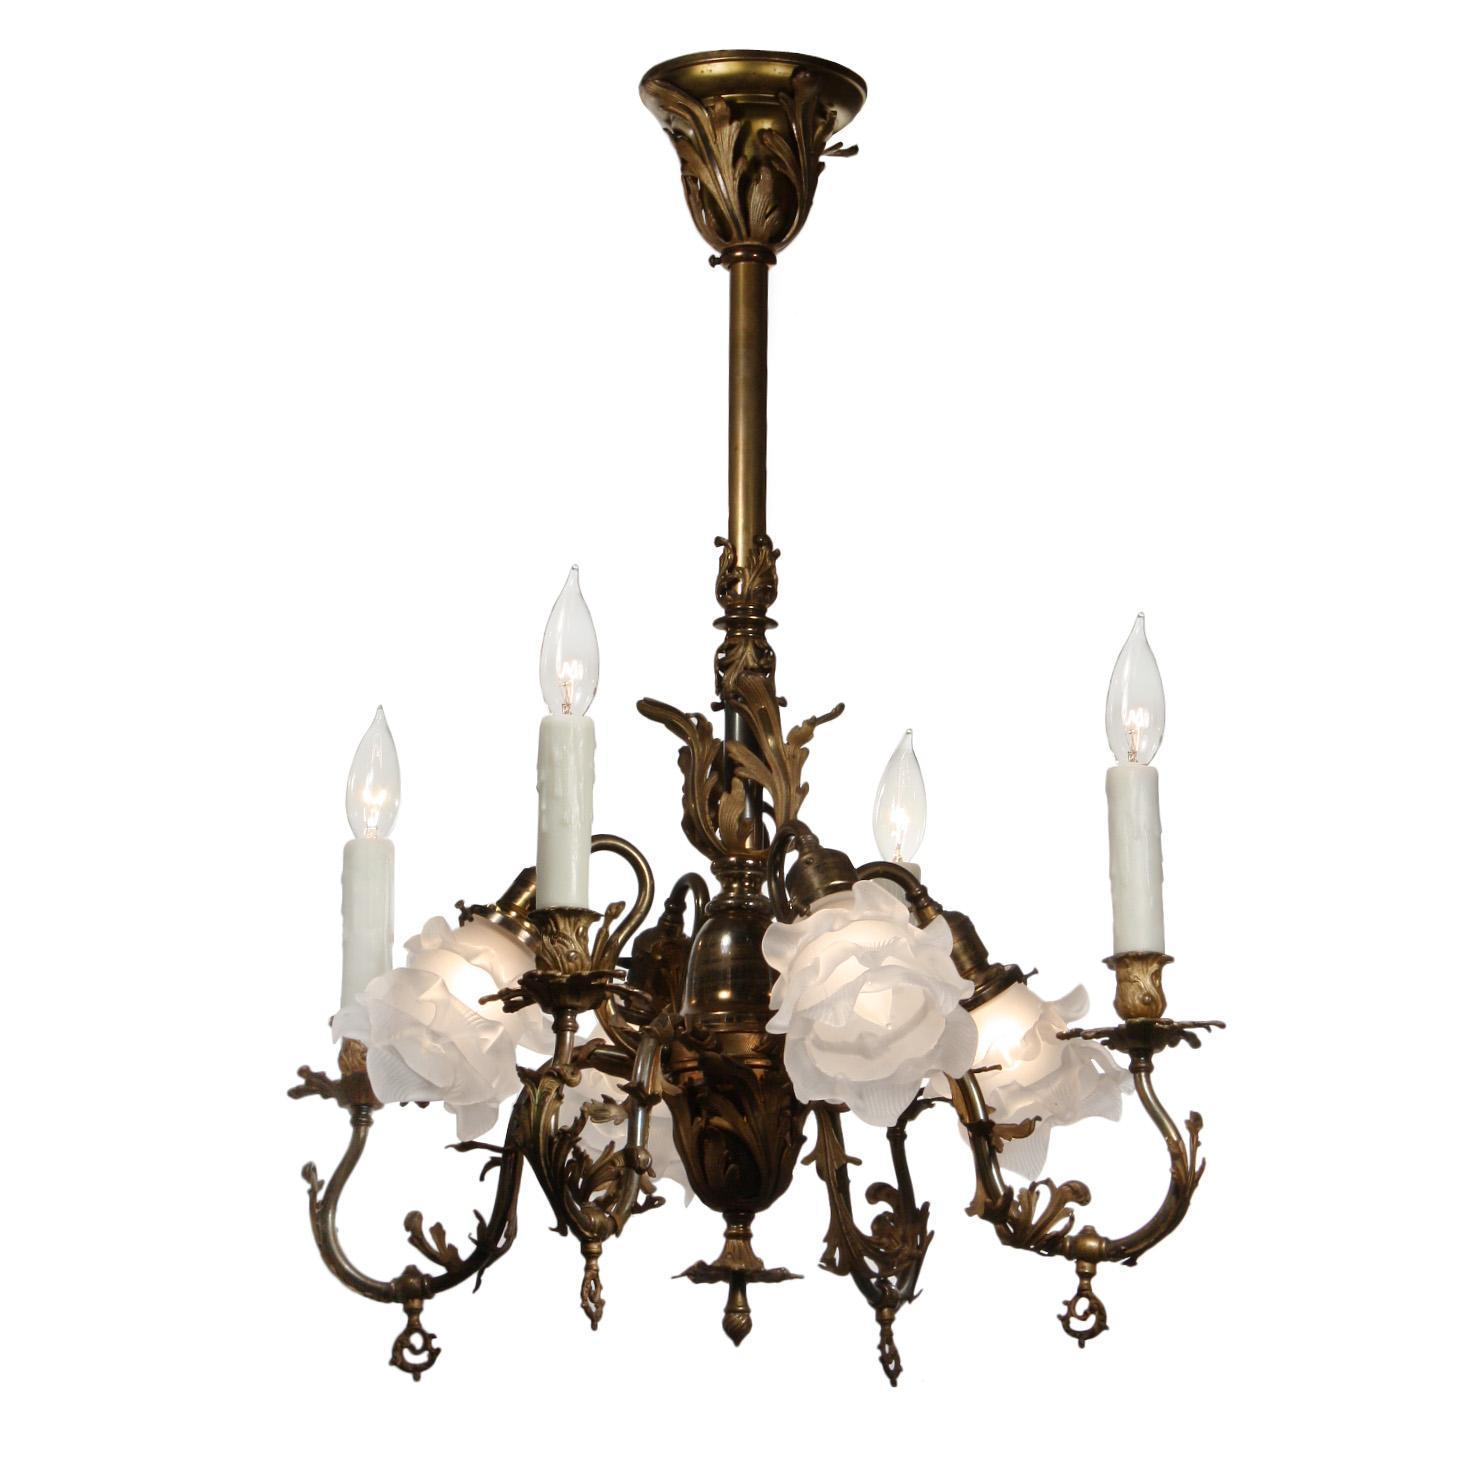 Antique Louis 16th Gas & Electric Chandelier, Late 19th Century